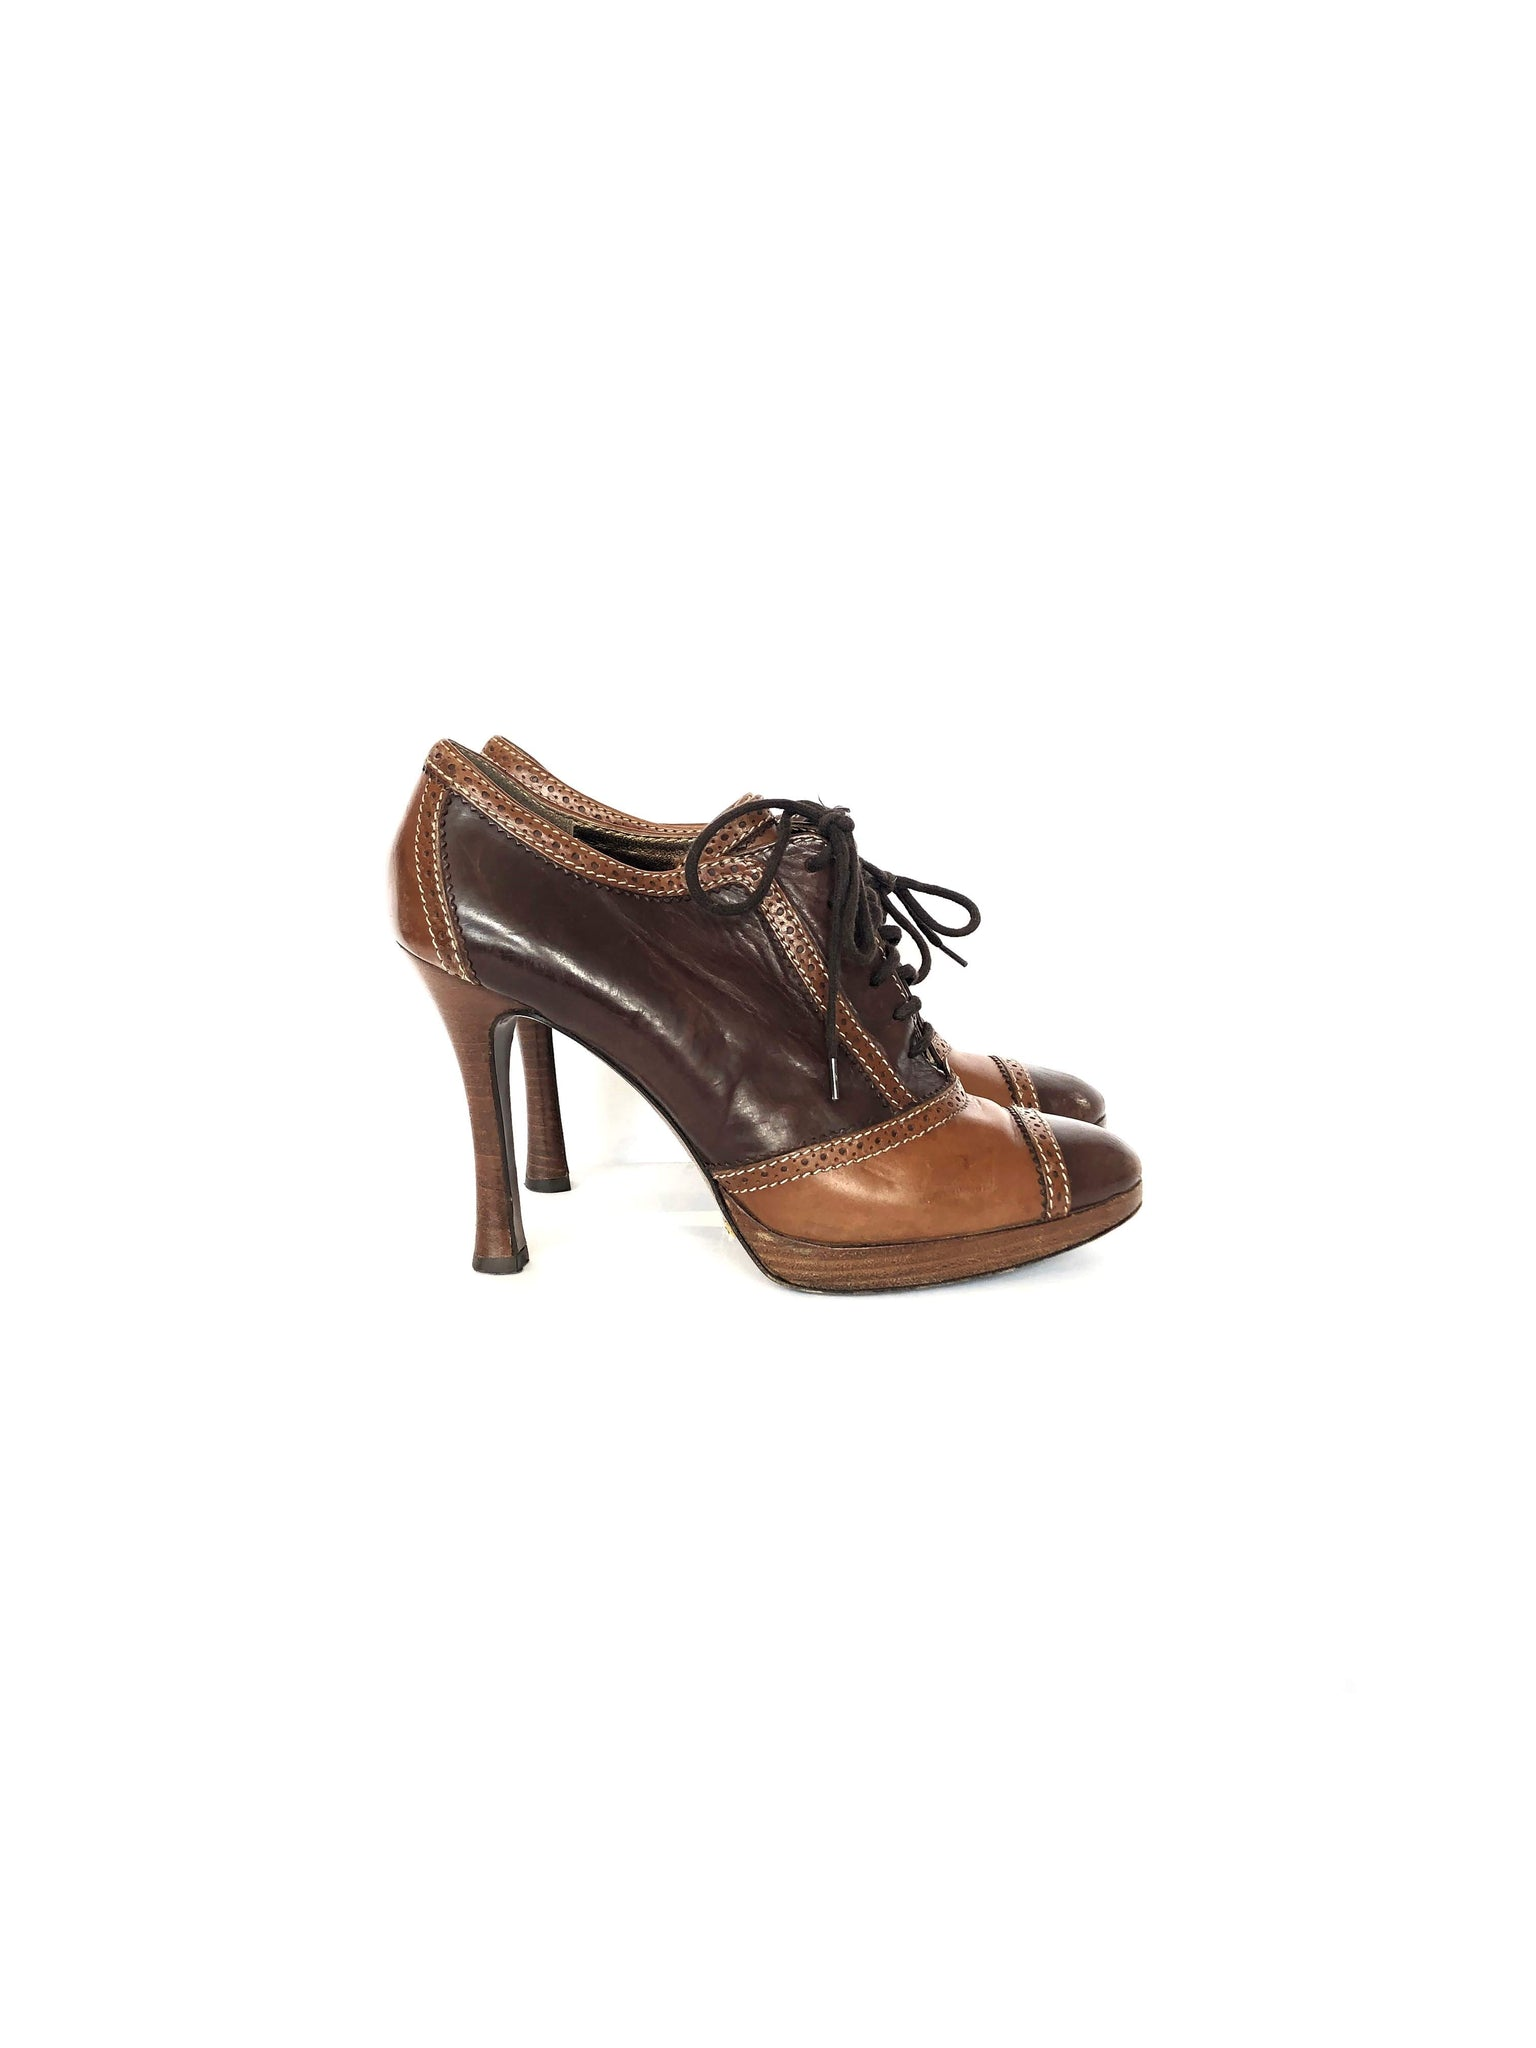 DOLCE AND GABBANA Brown Leather Ankle Oxford Pumps